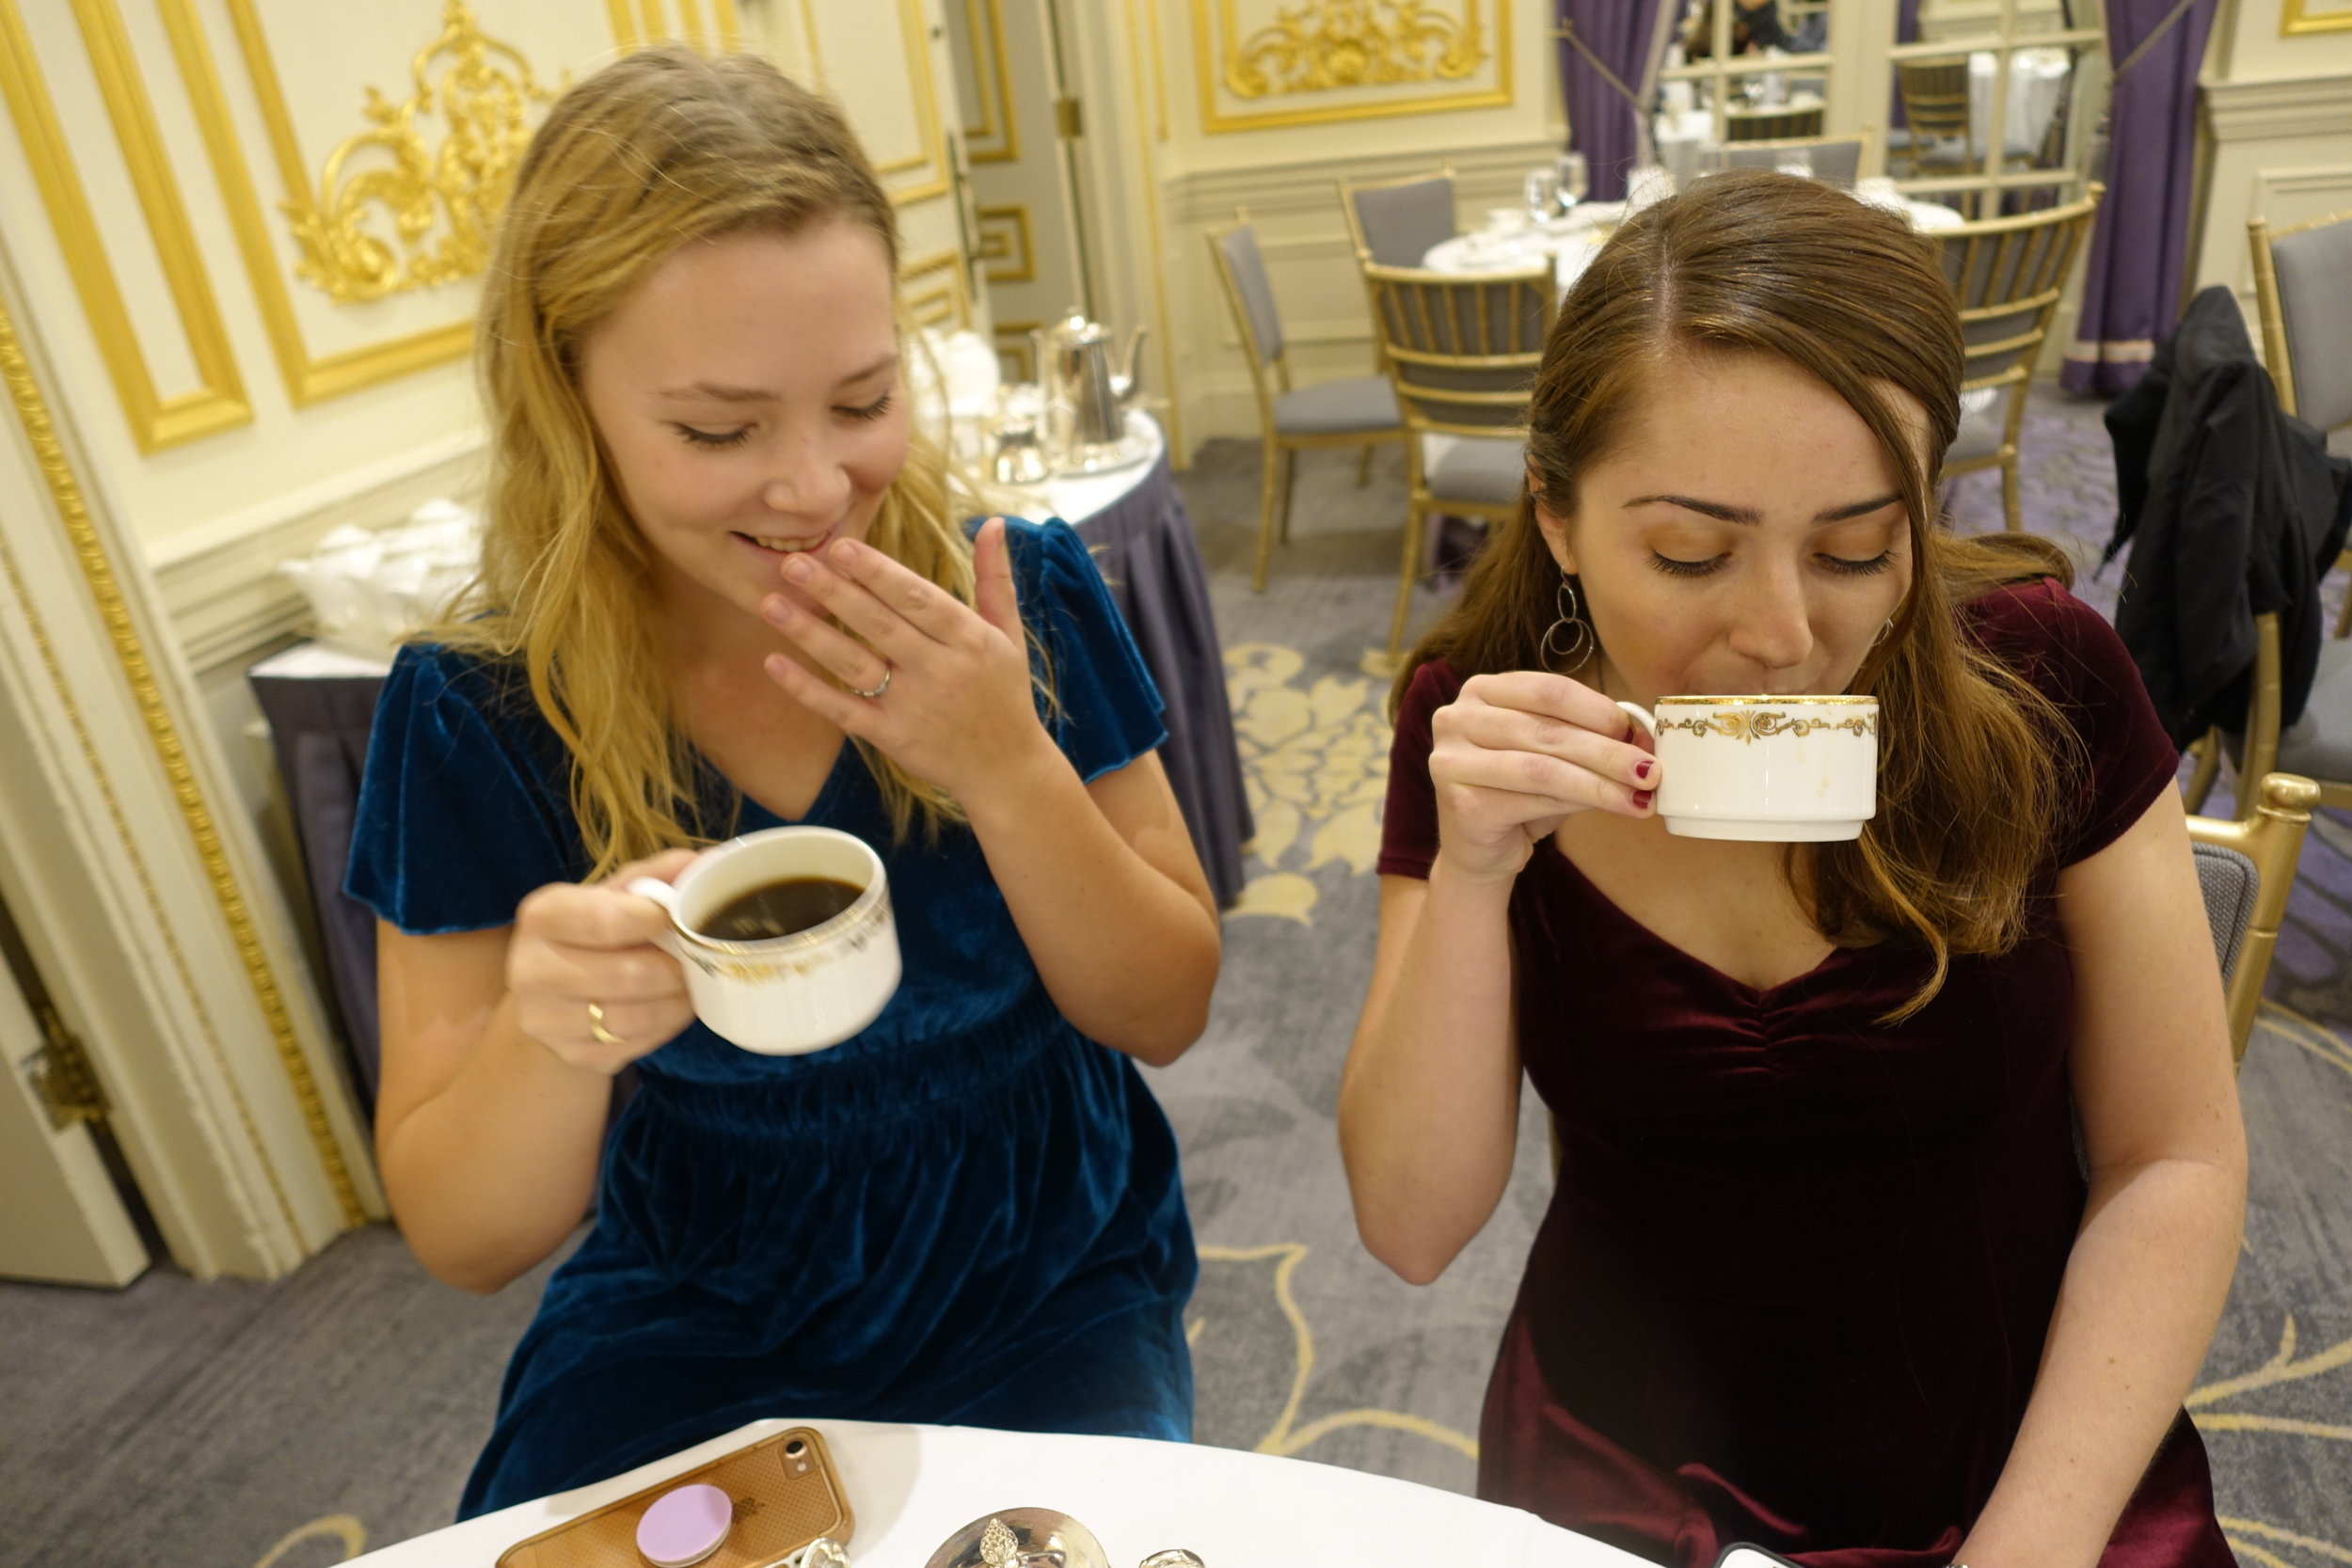 Students, faculty, and the MHC Chair enjoyed tea, desserts, and each other's company during High Tea at the St. Regis.